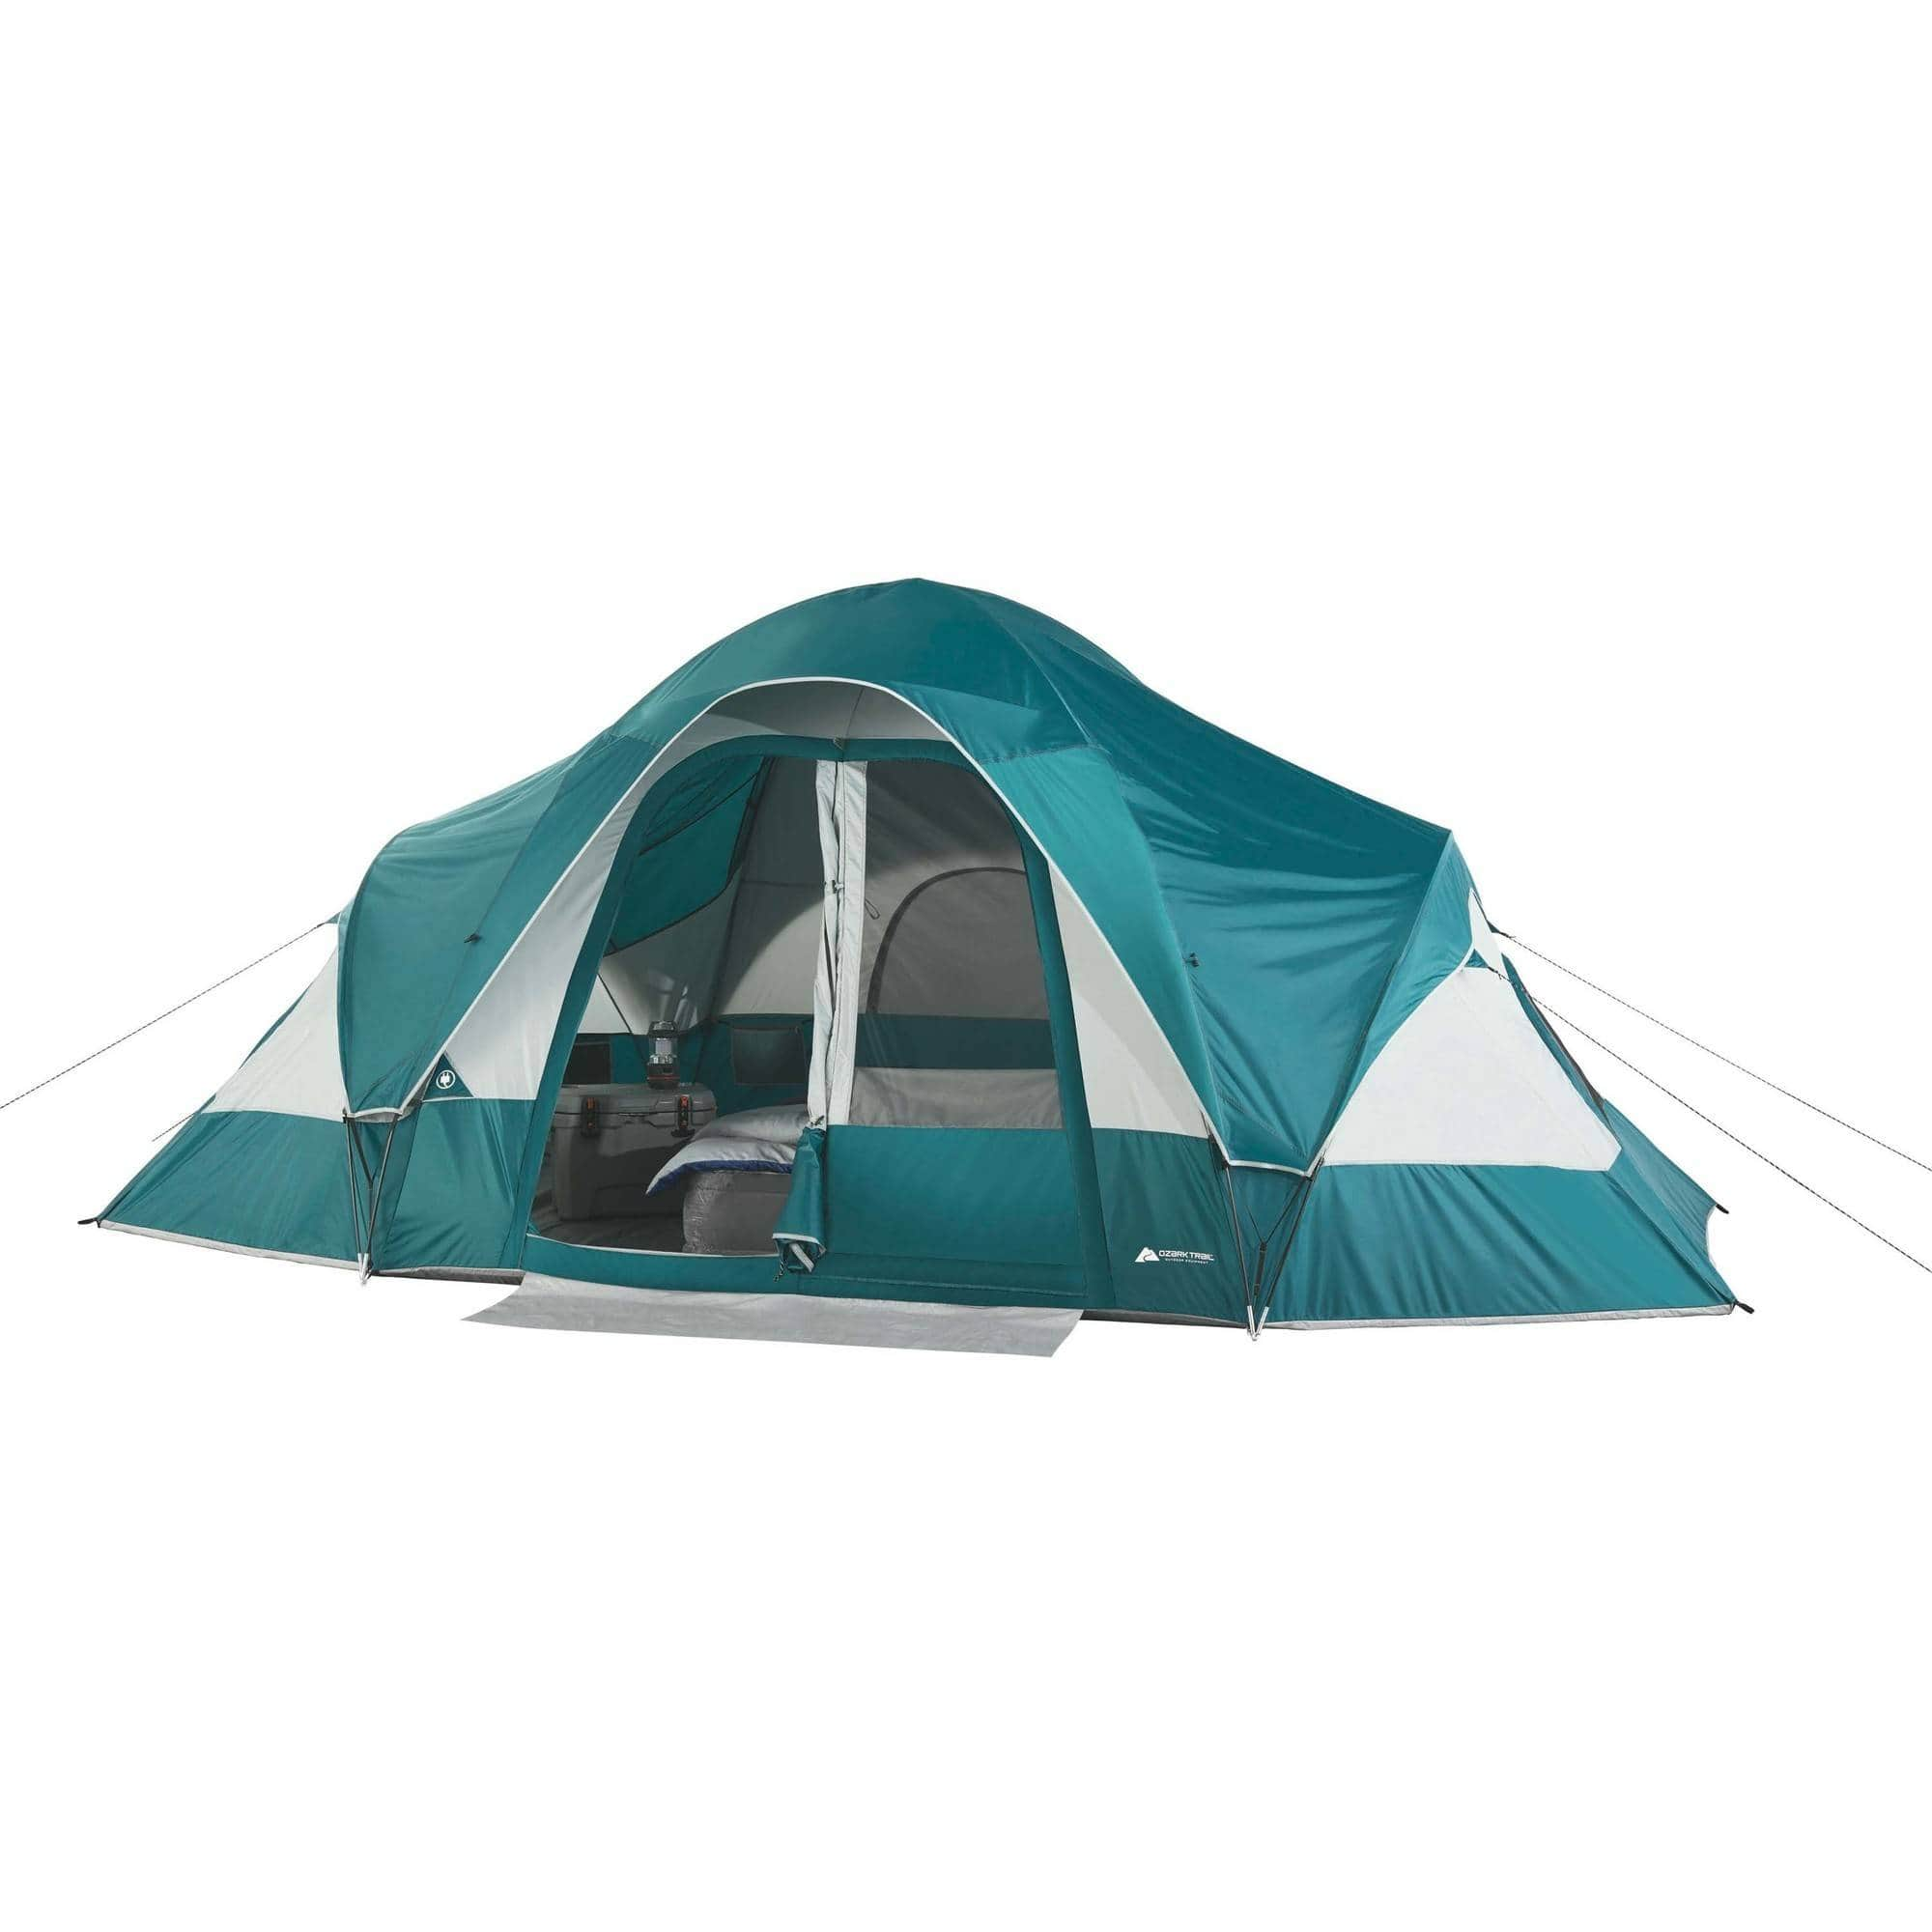 ozark trail 8 person family tent various colors slickdeals net